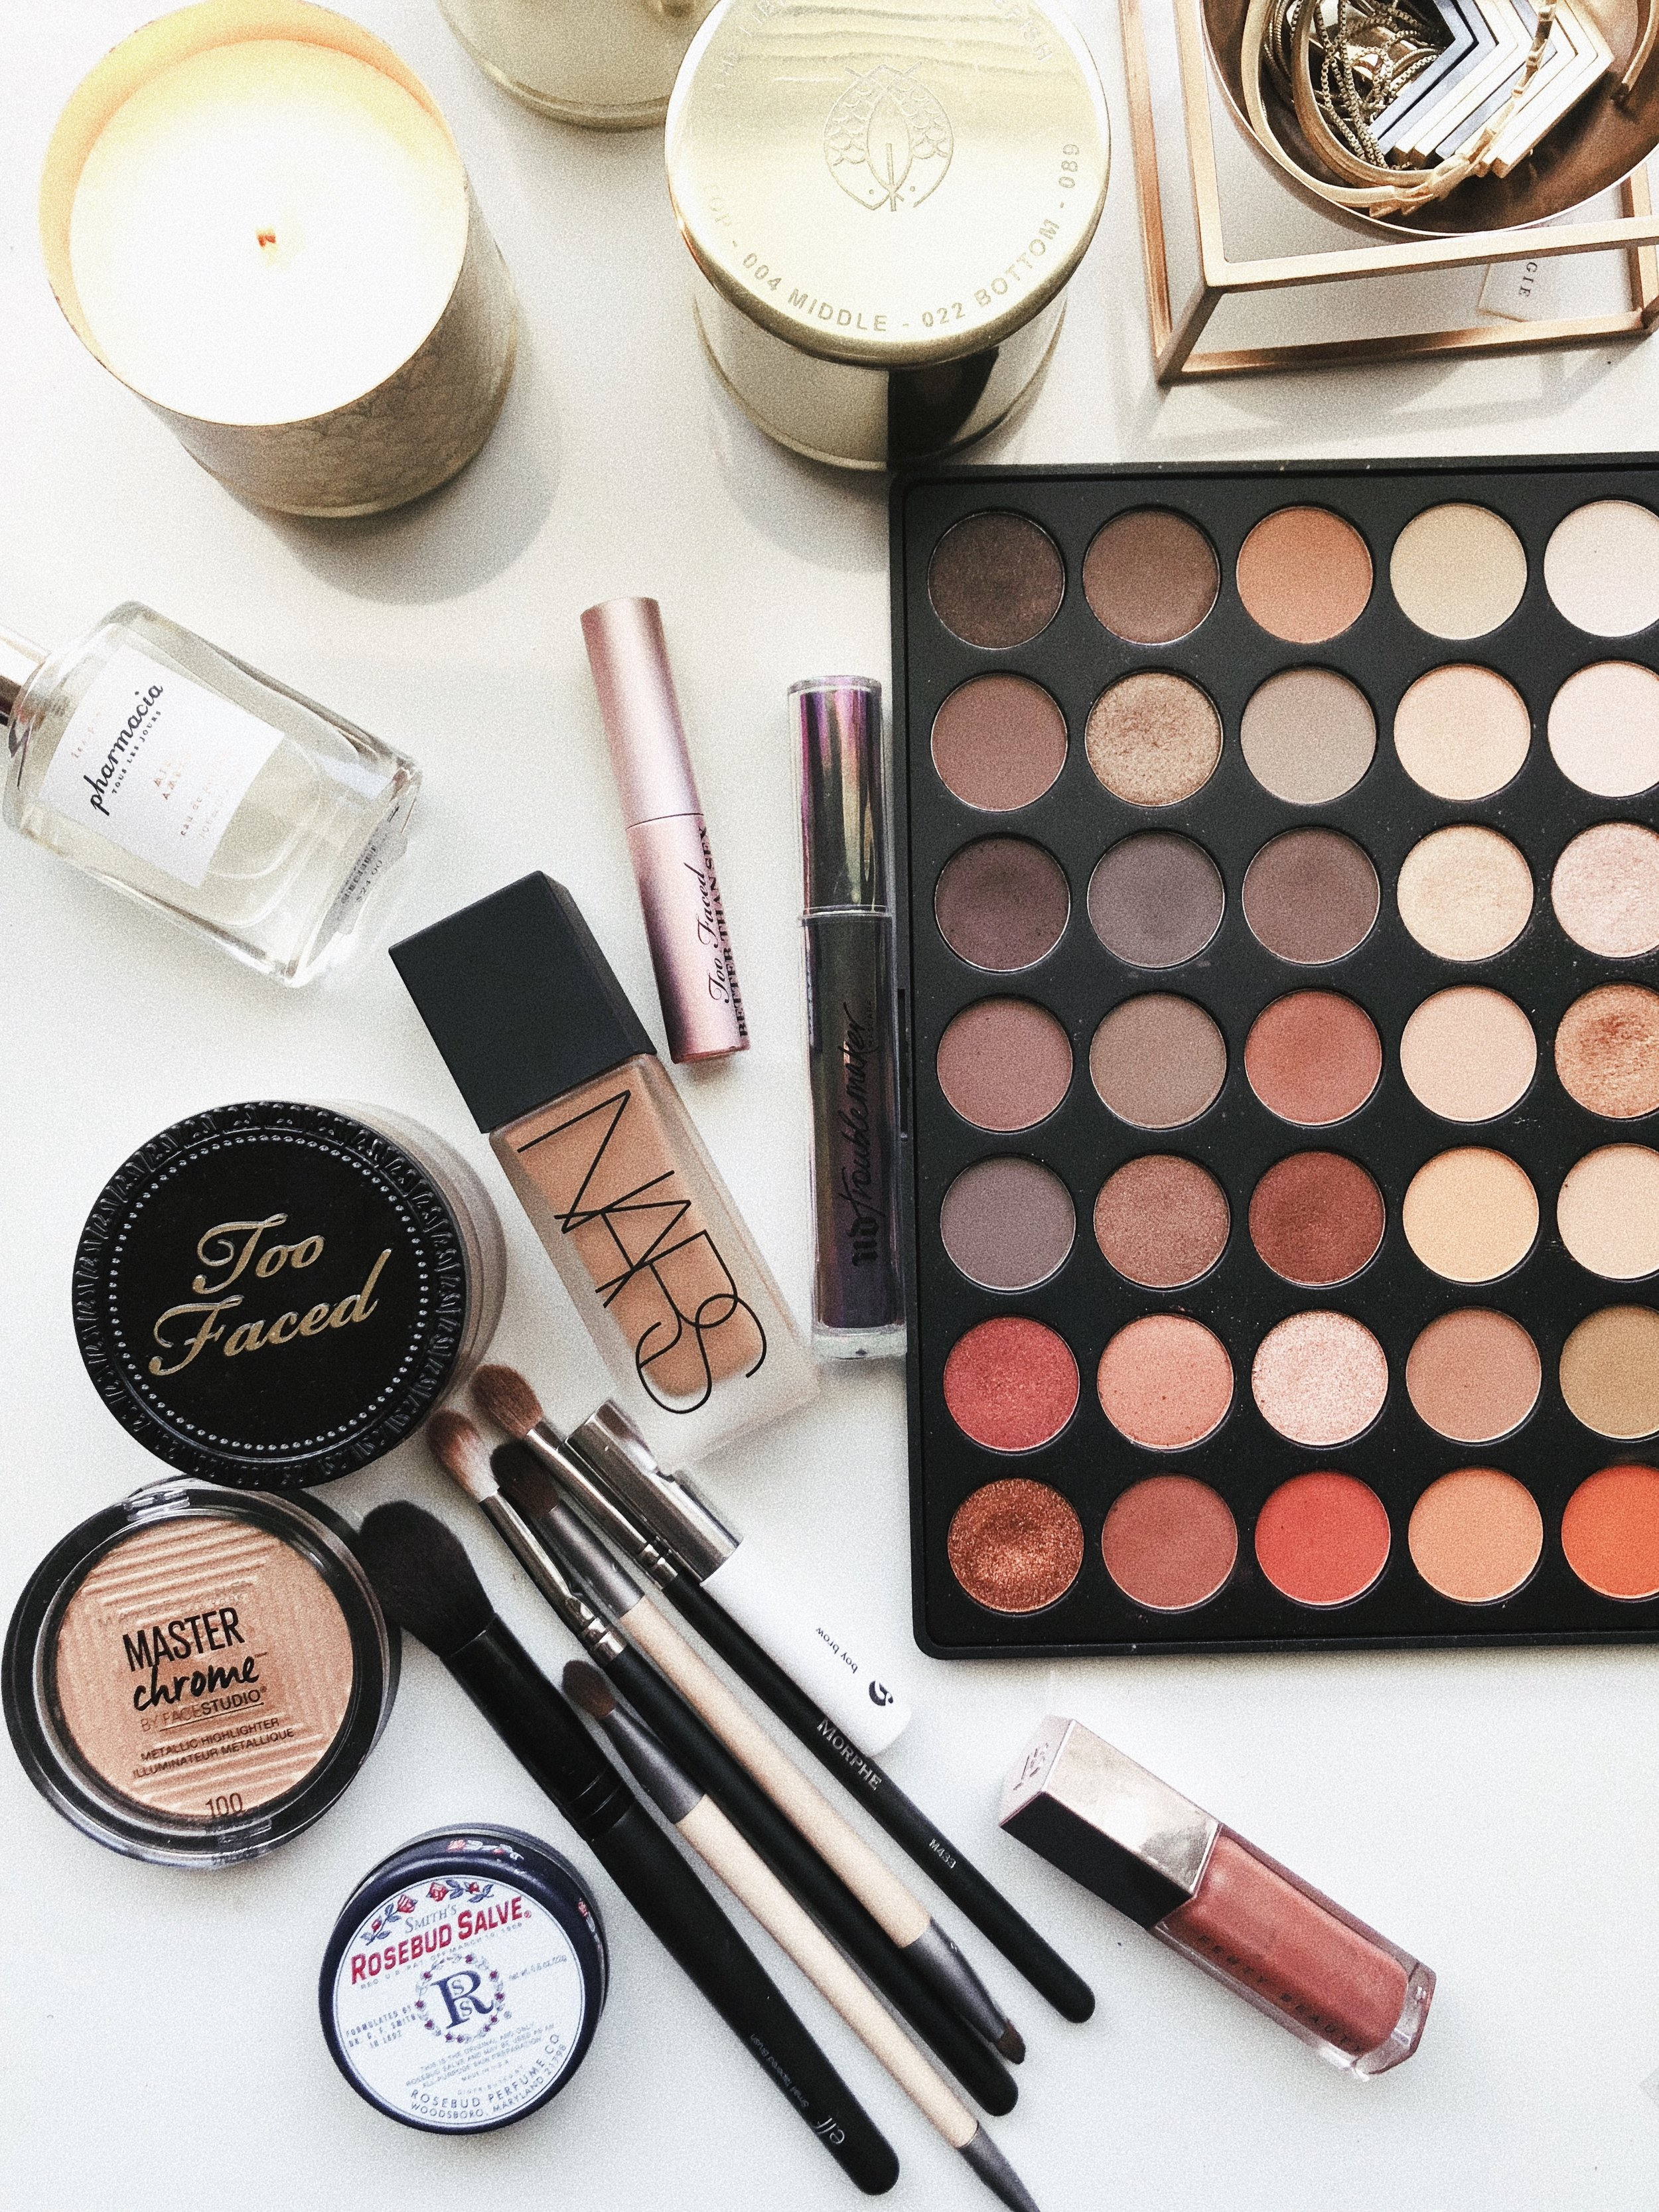 One on One Consults, Makeup Parties, and Workshops - We believe your makeup collection should be curated to suit not just you, but your lifestyle as well